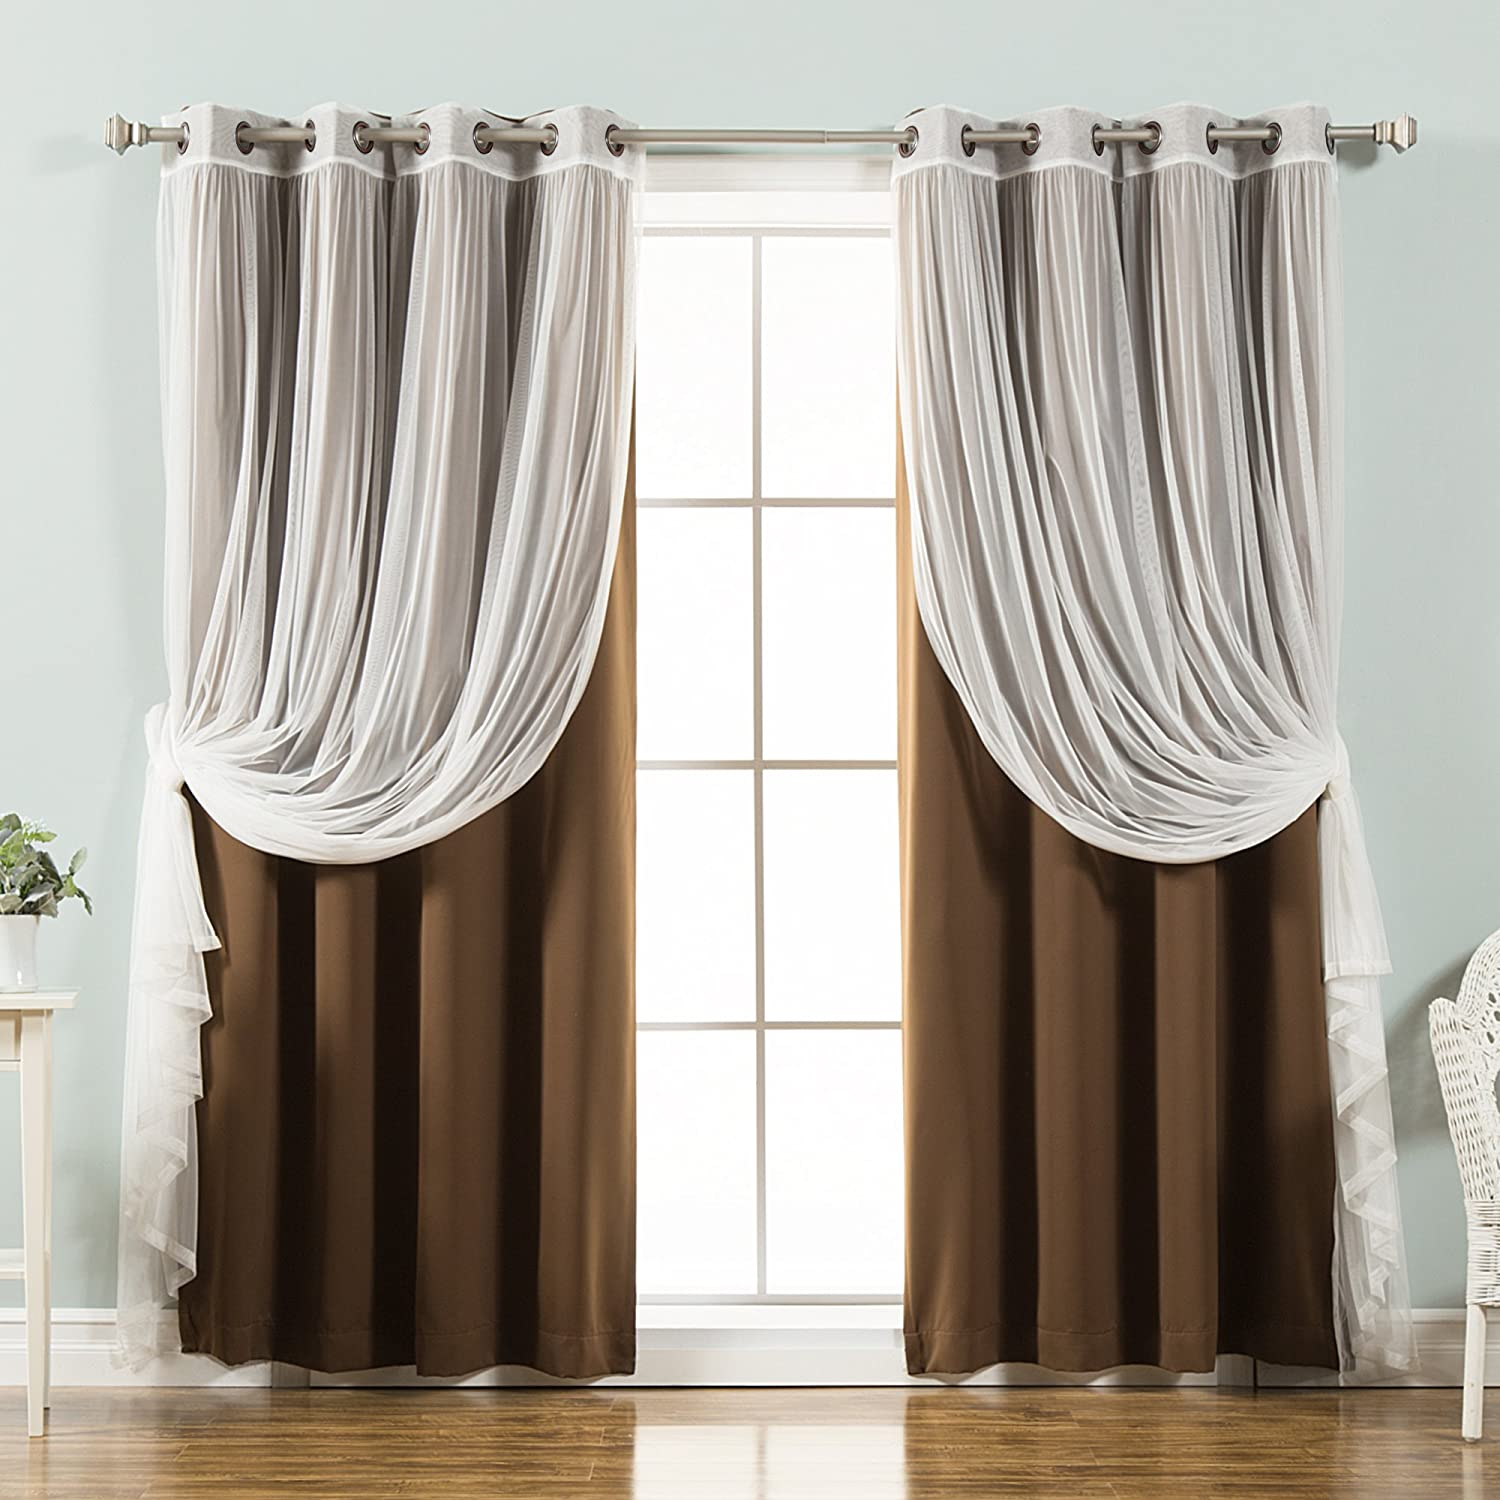 Best Home Fashion Mix & Match Tulle Sheer Lace & Blackout Curtain Set - Antique Bronze Grommet Top - Chocolate